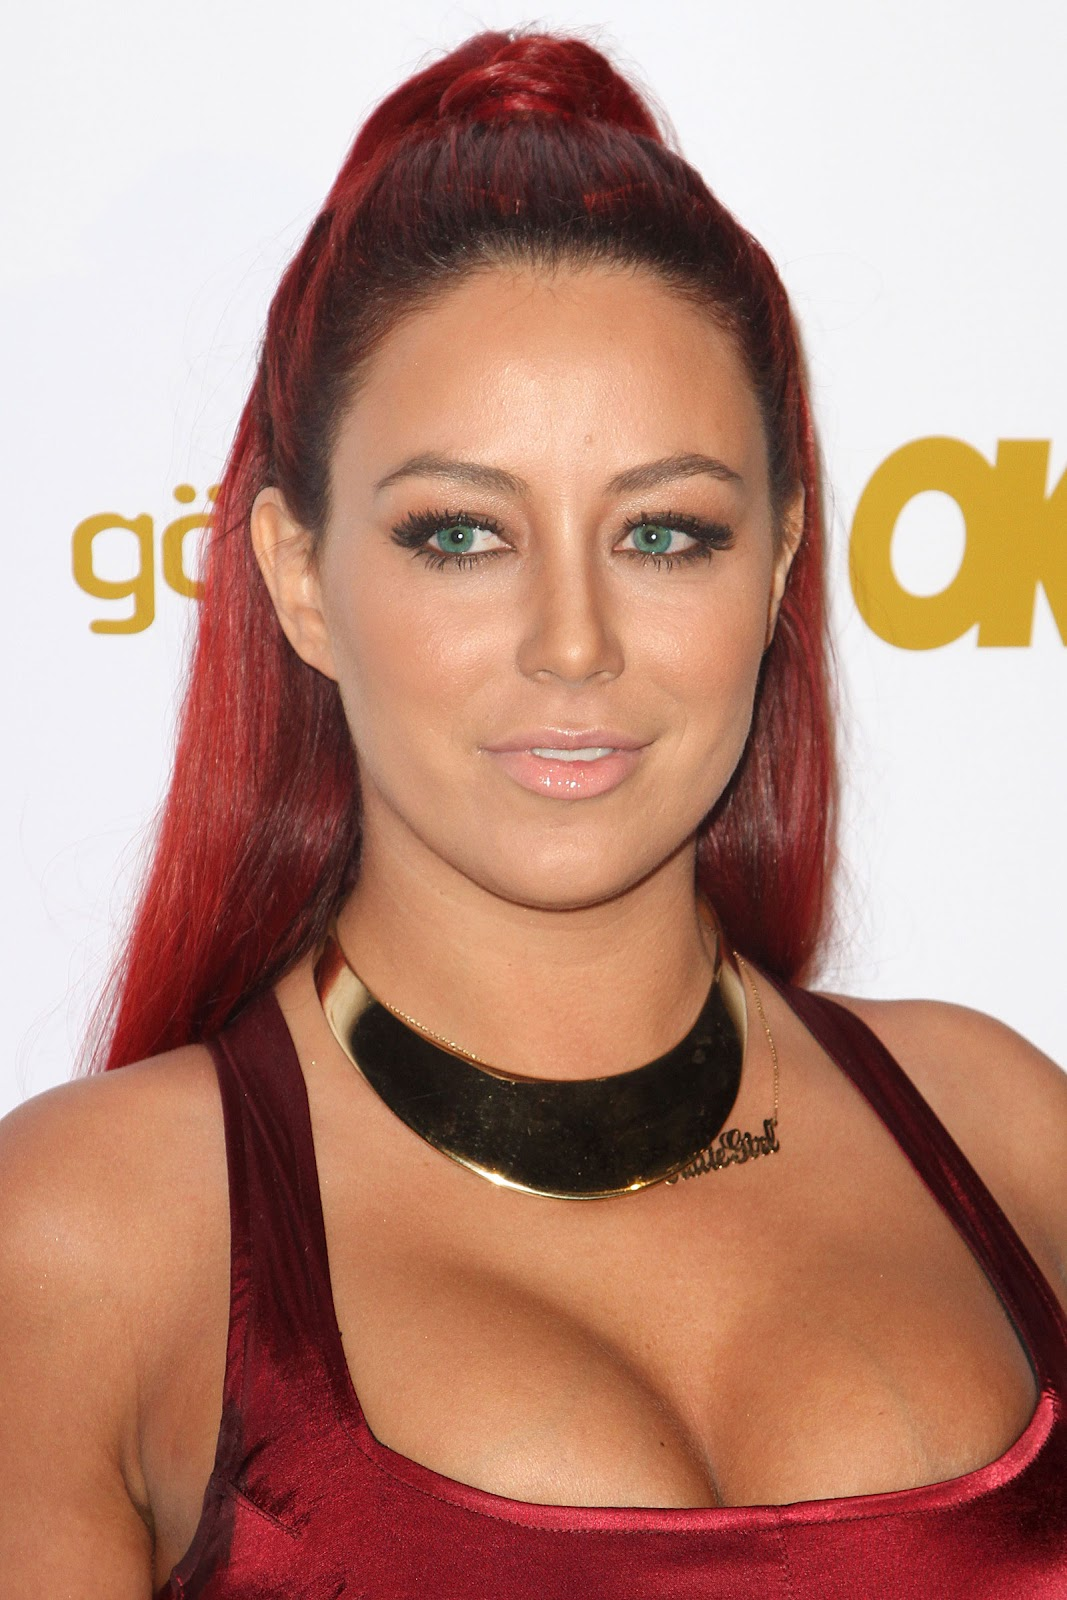 Aubrey ODay naked (86 images) Gallery, Facebook, butt